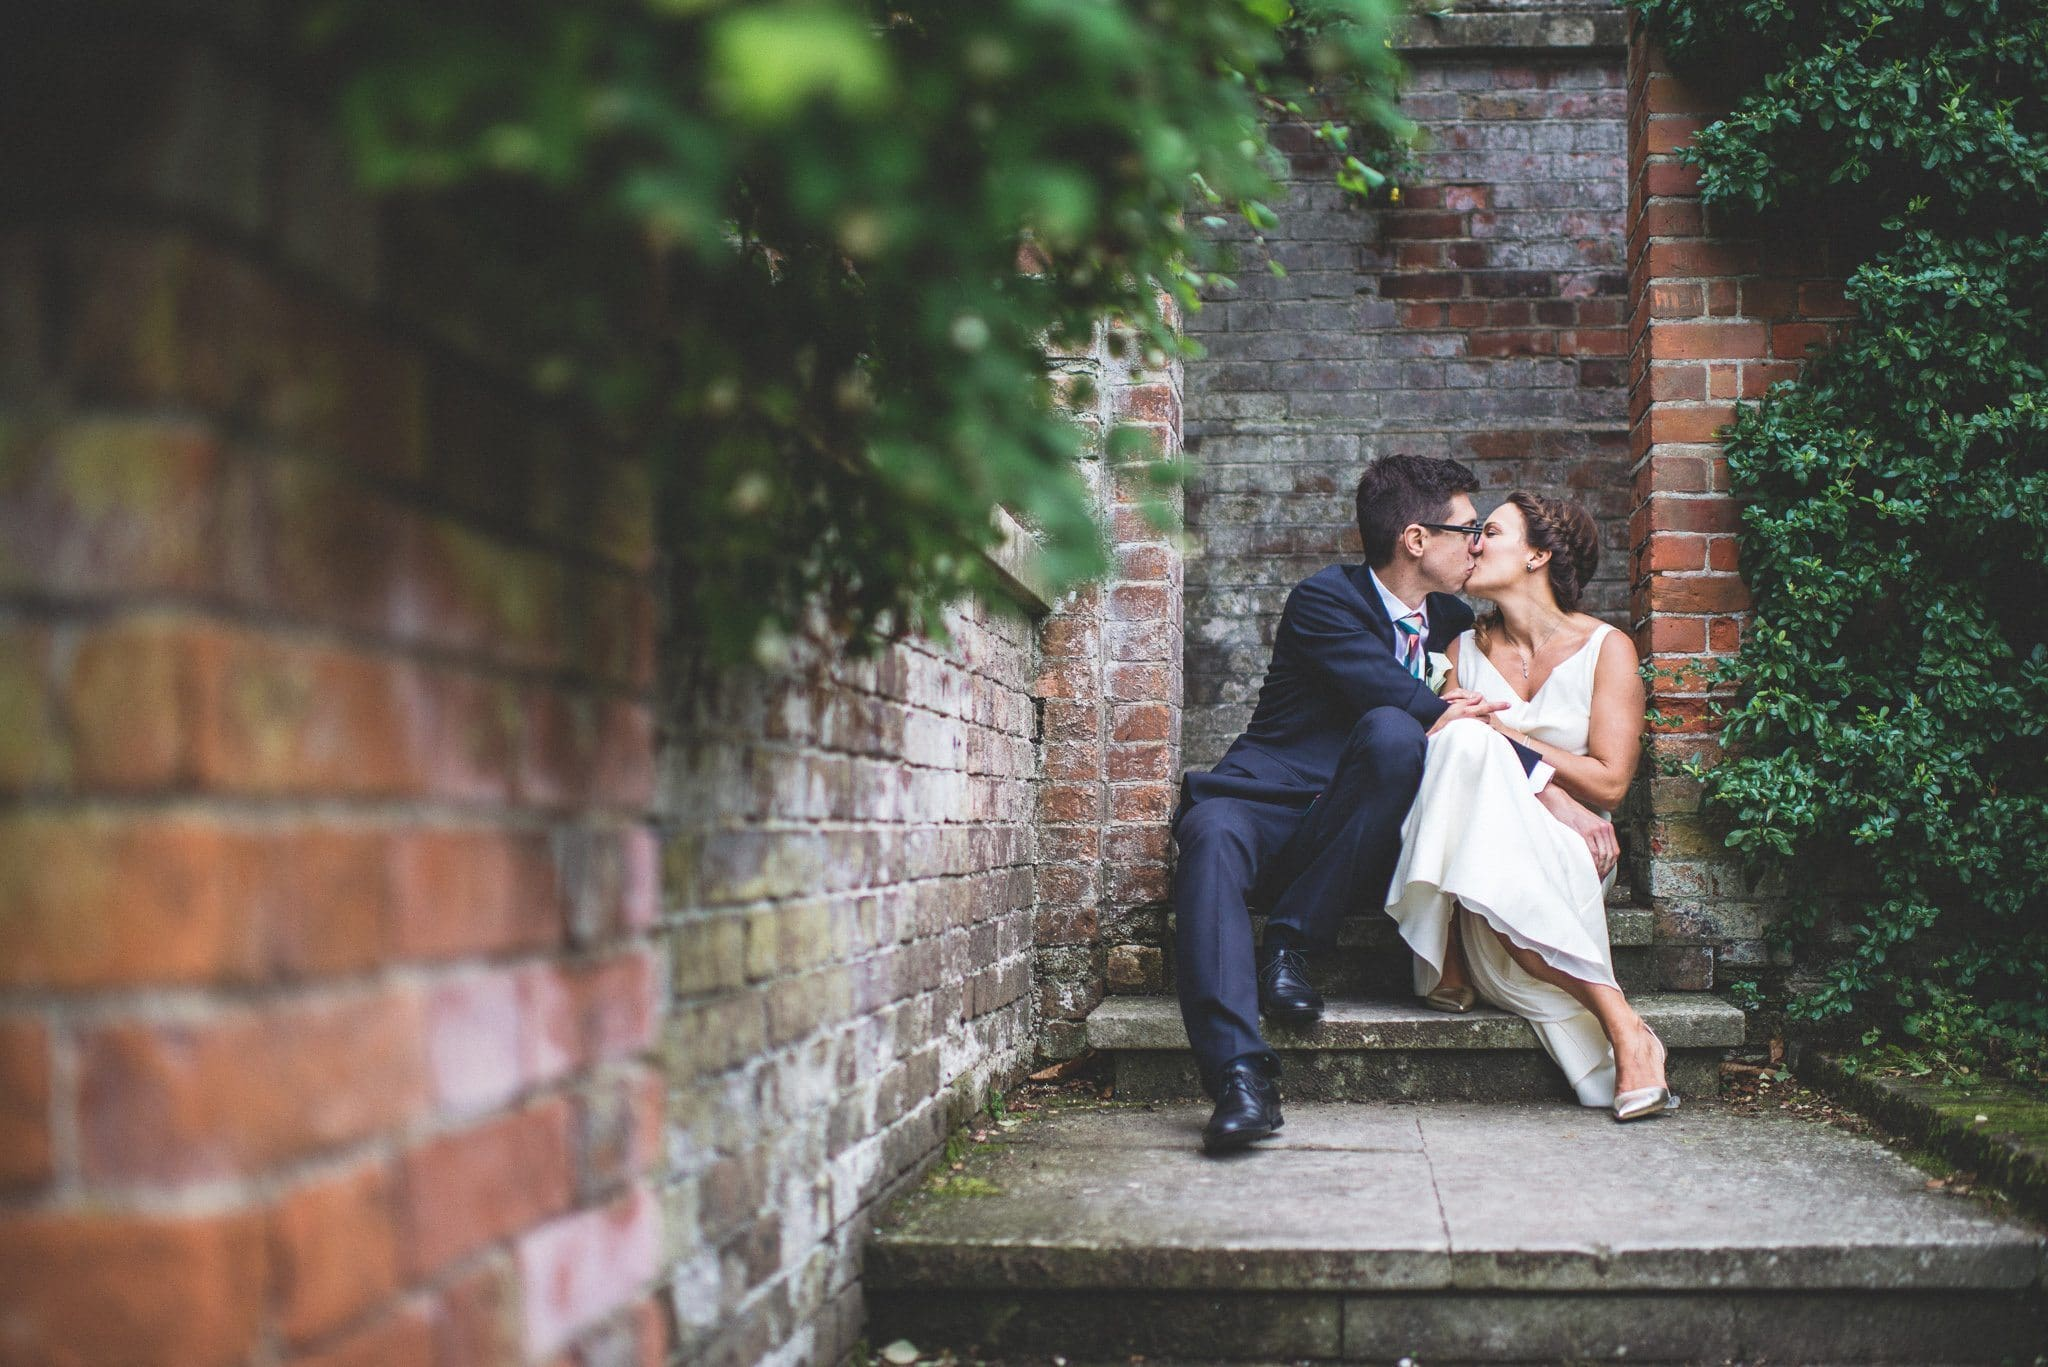 The newlyweds kiss against a backdrop of red brick and dark green foliage